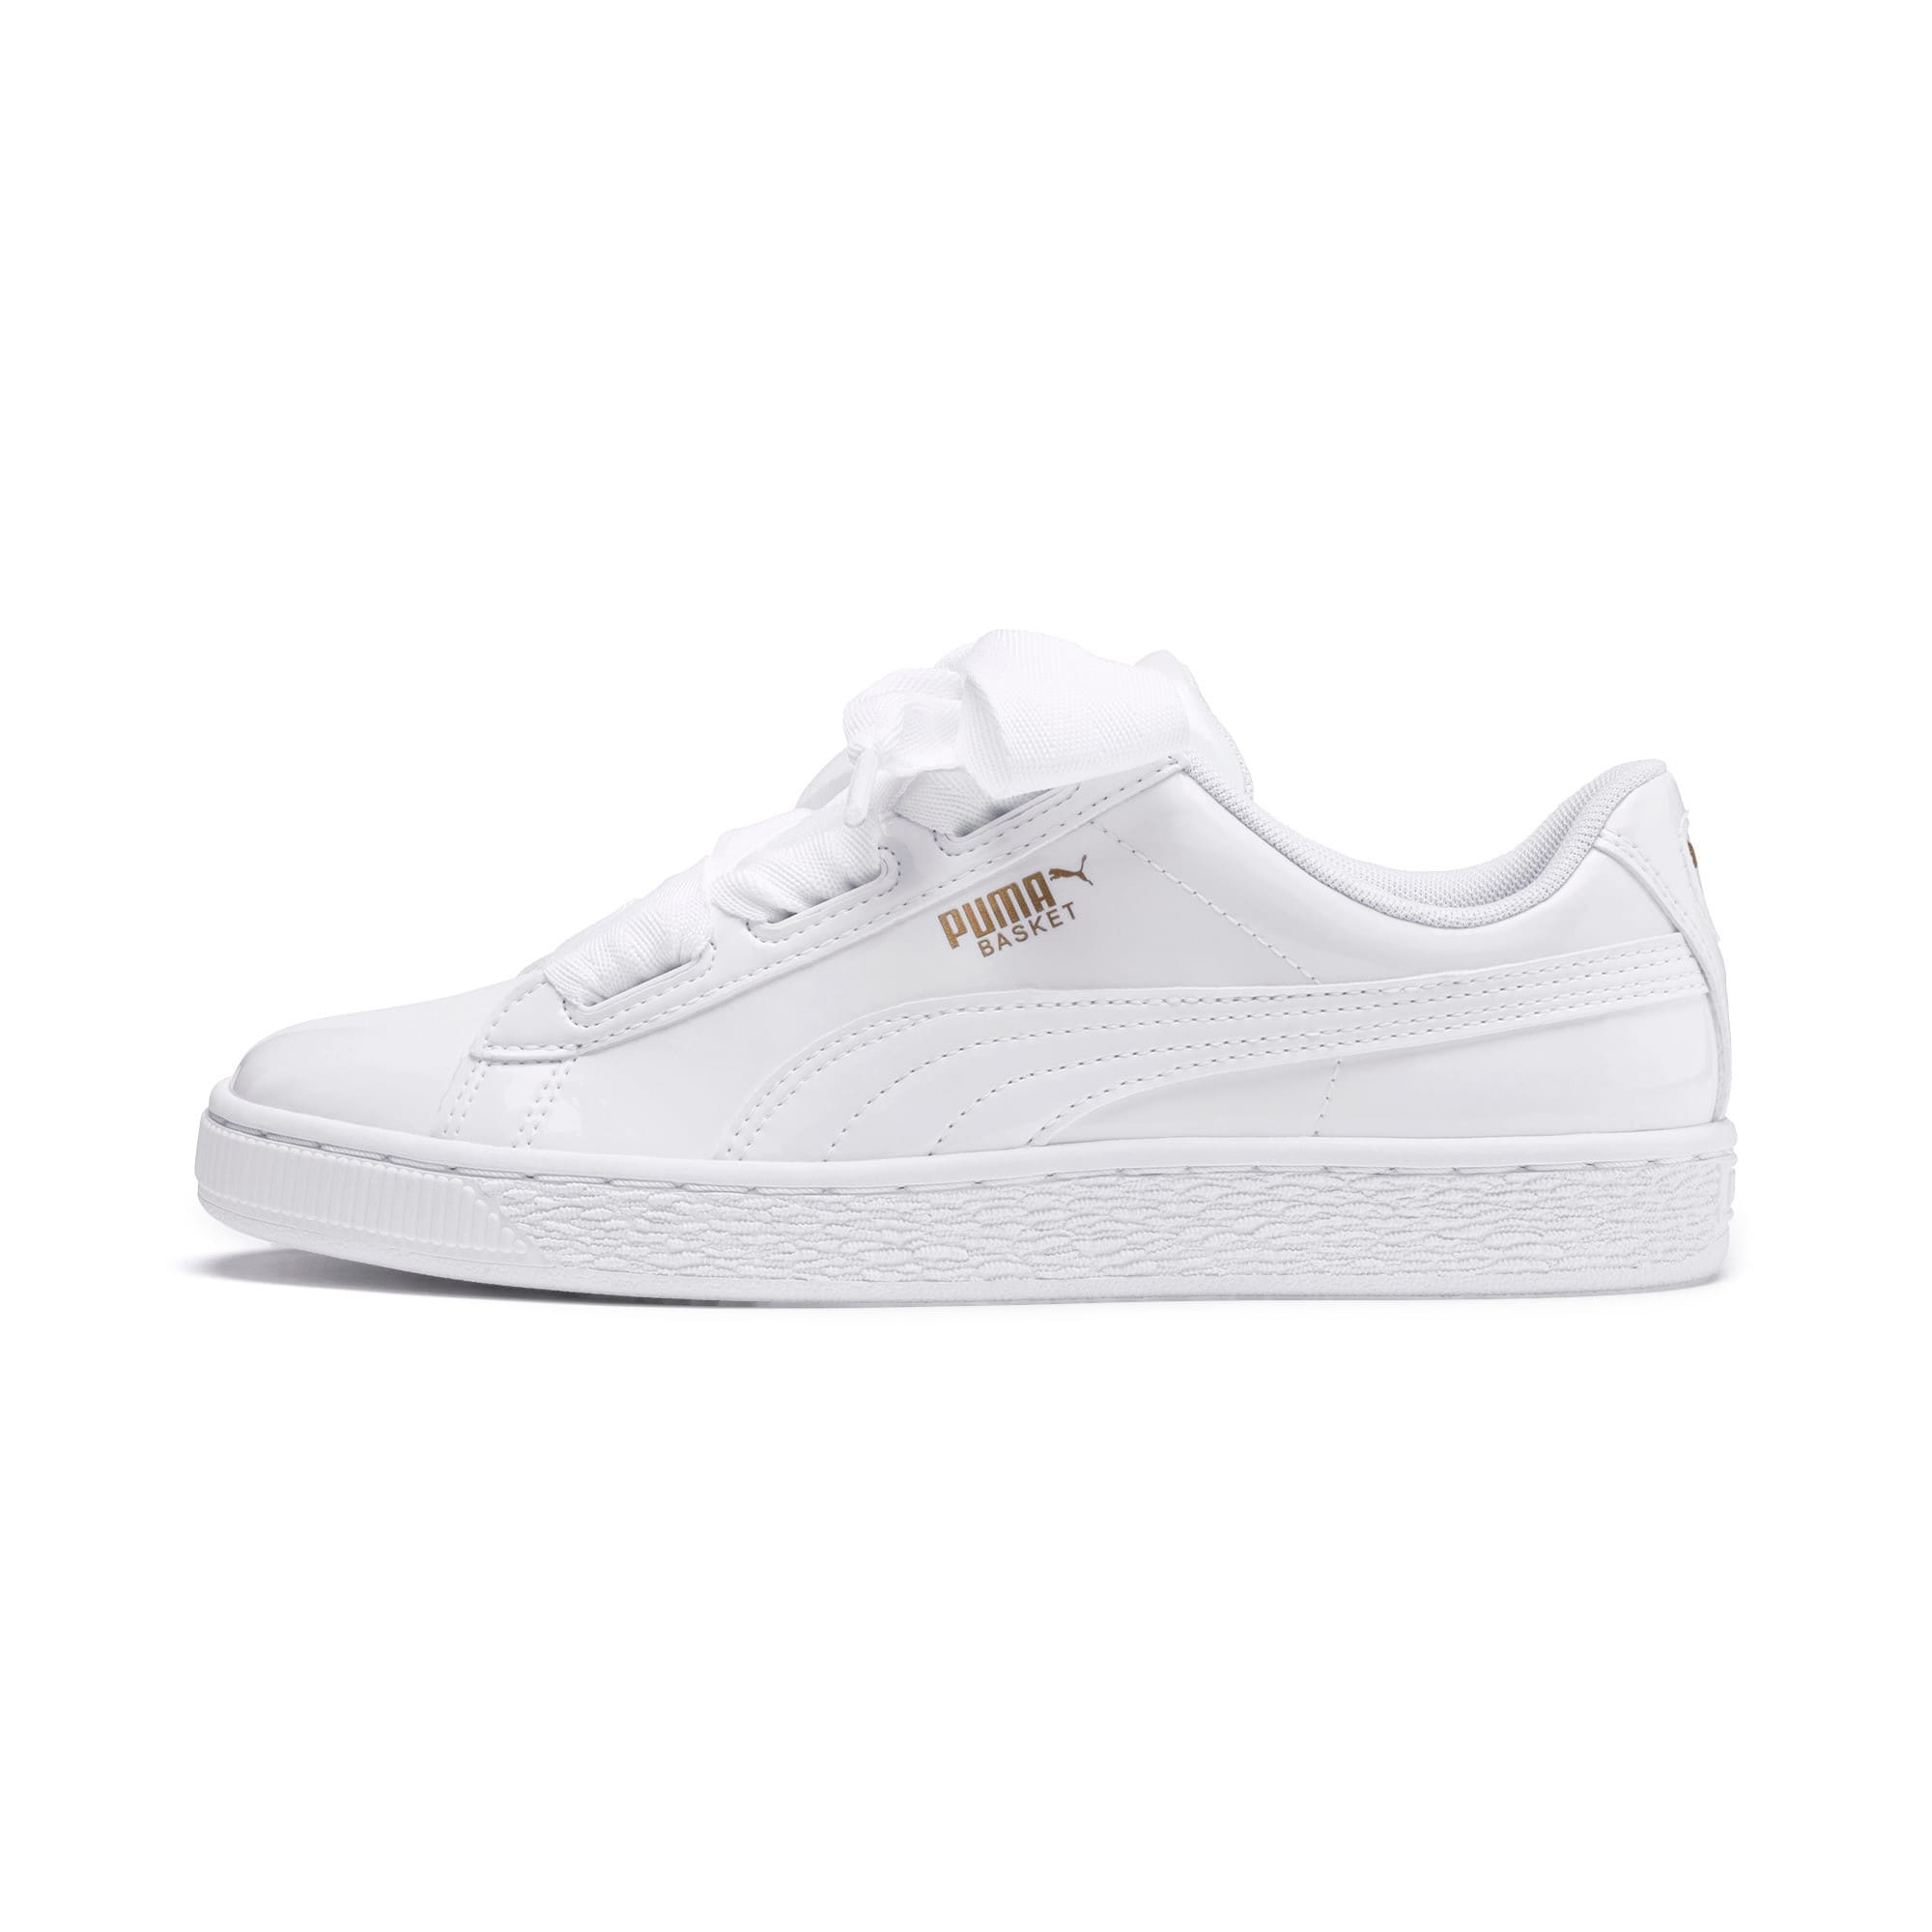 Thumbnail 1 of Basket Heart Patent Sneakers JR, White-Black-PRISM PINK-Gold, medium